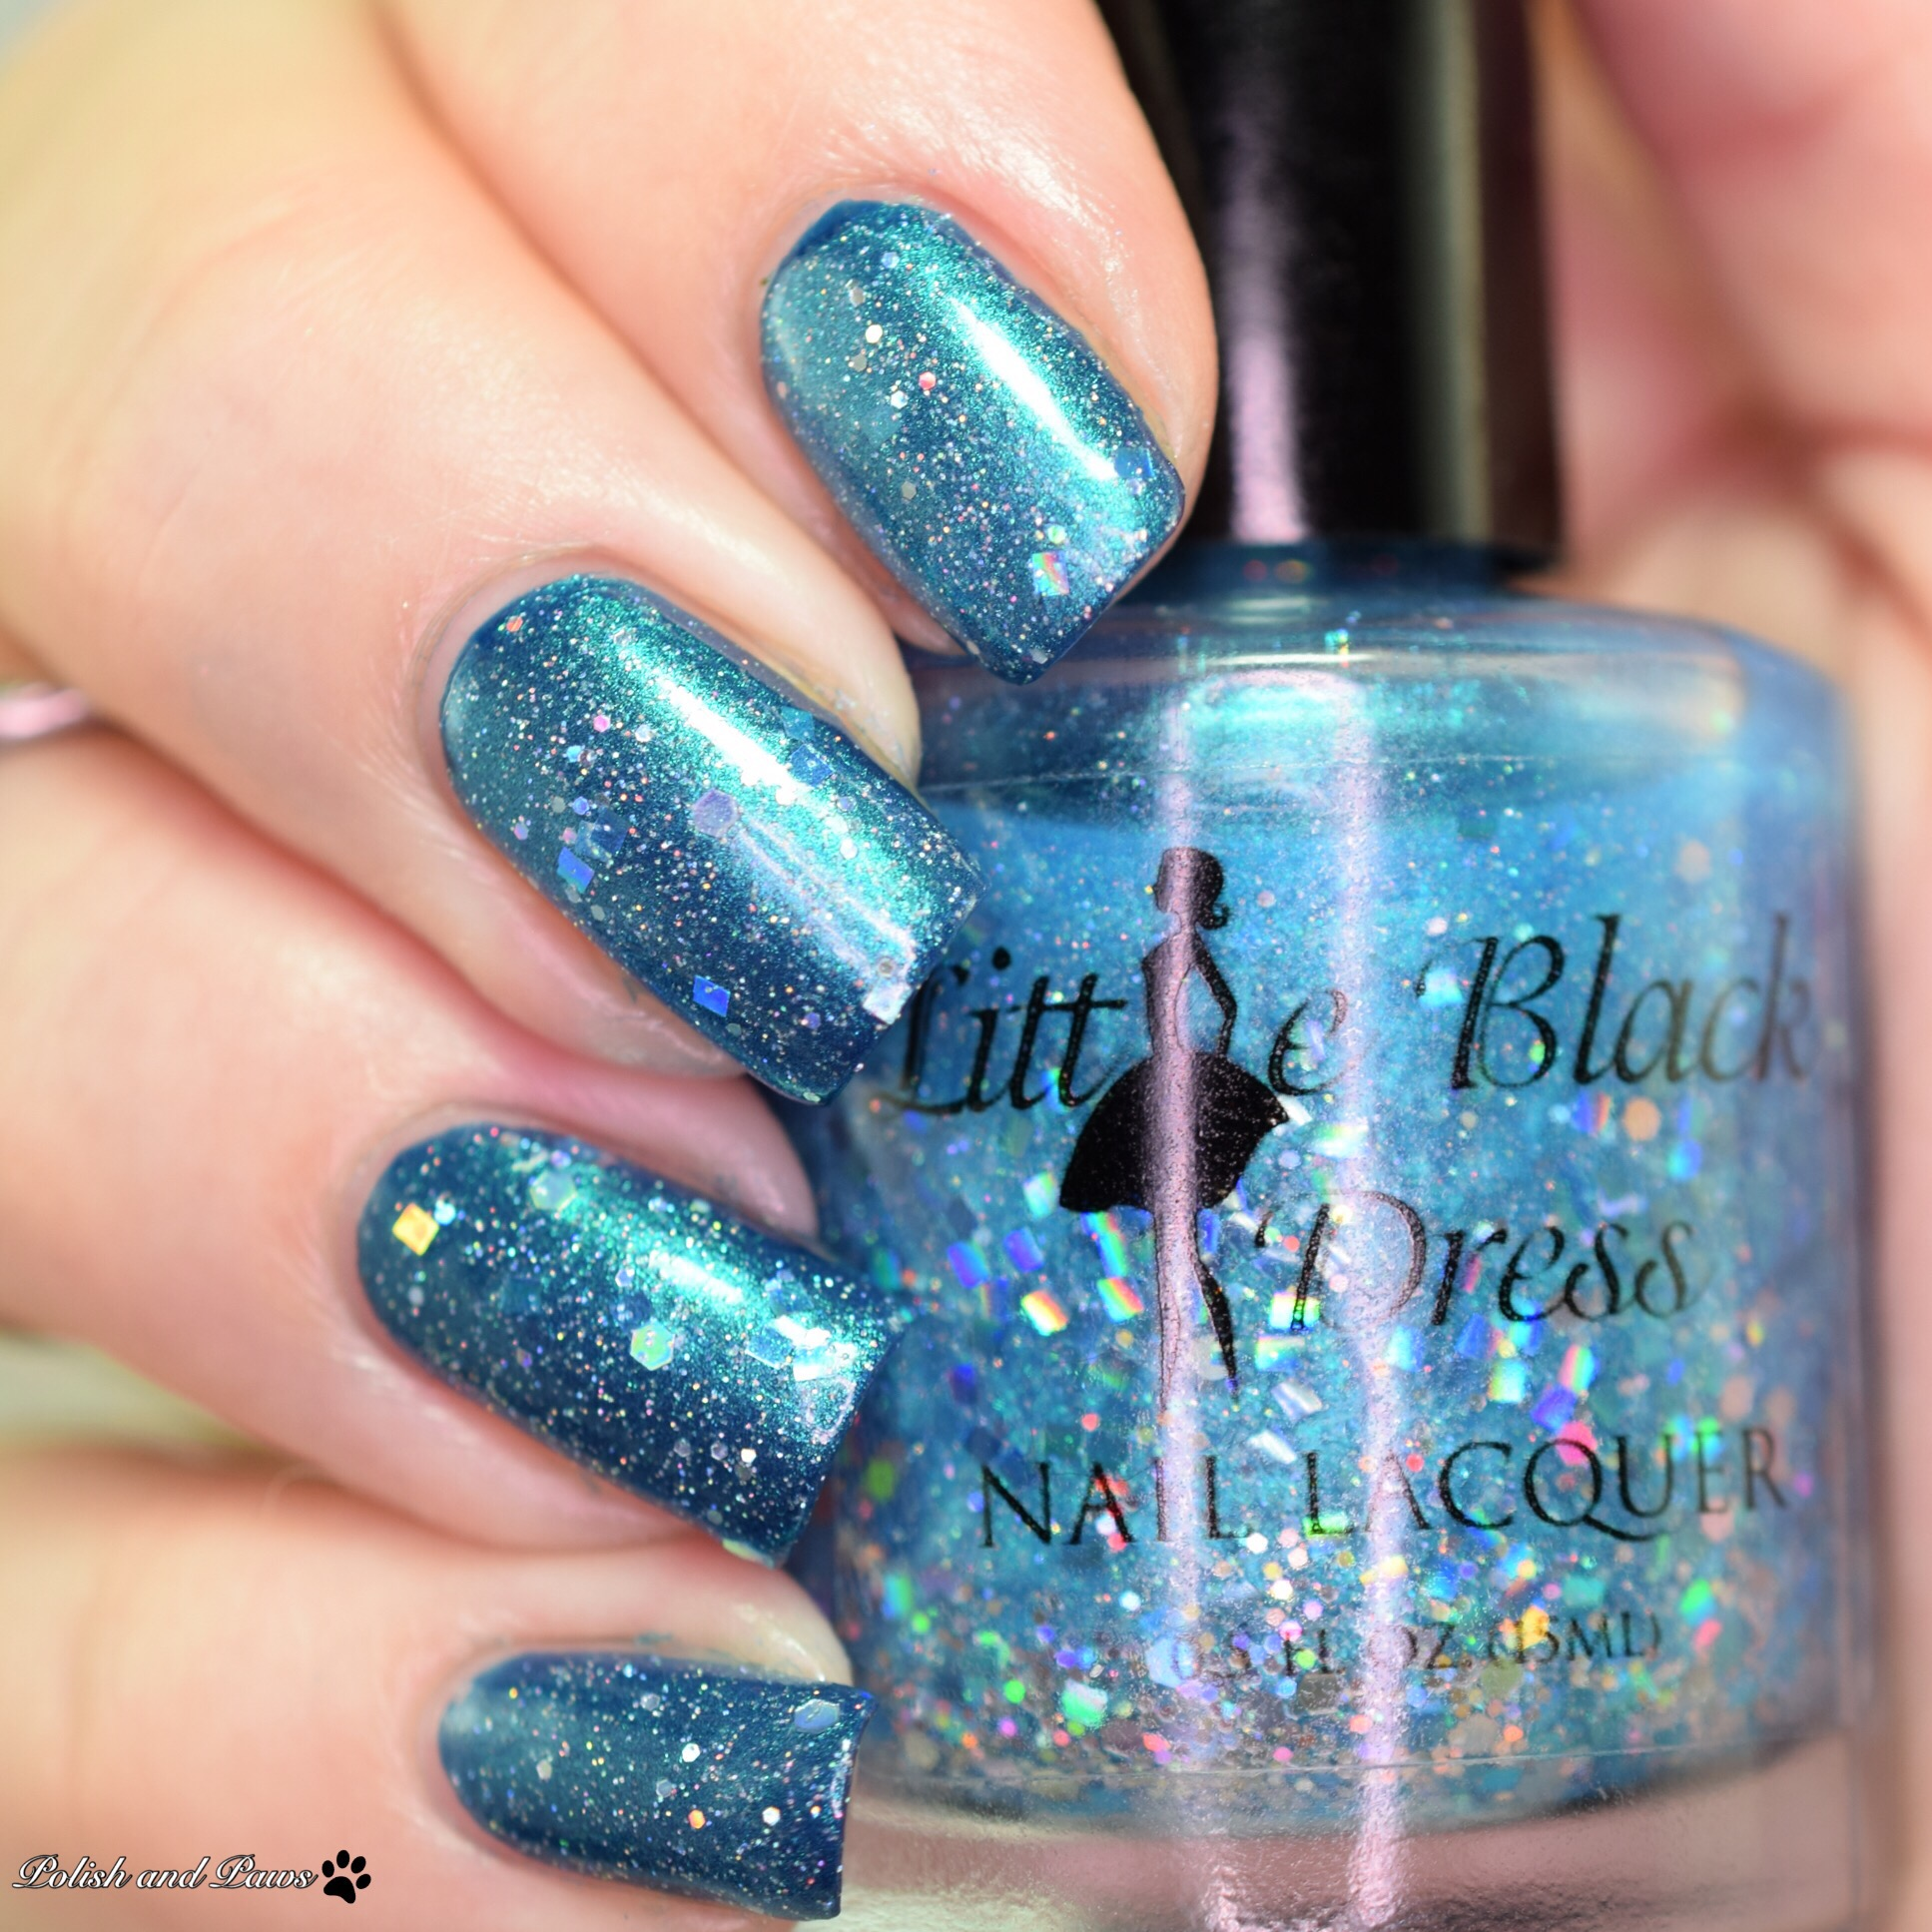 Little Black Dress Nail Lacquer Prom Queen